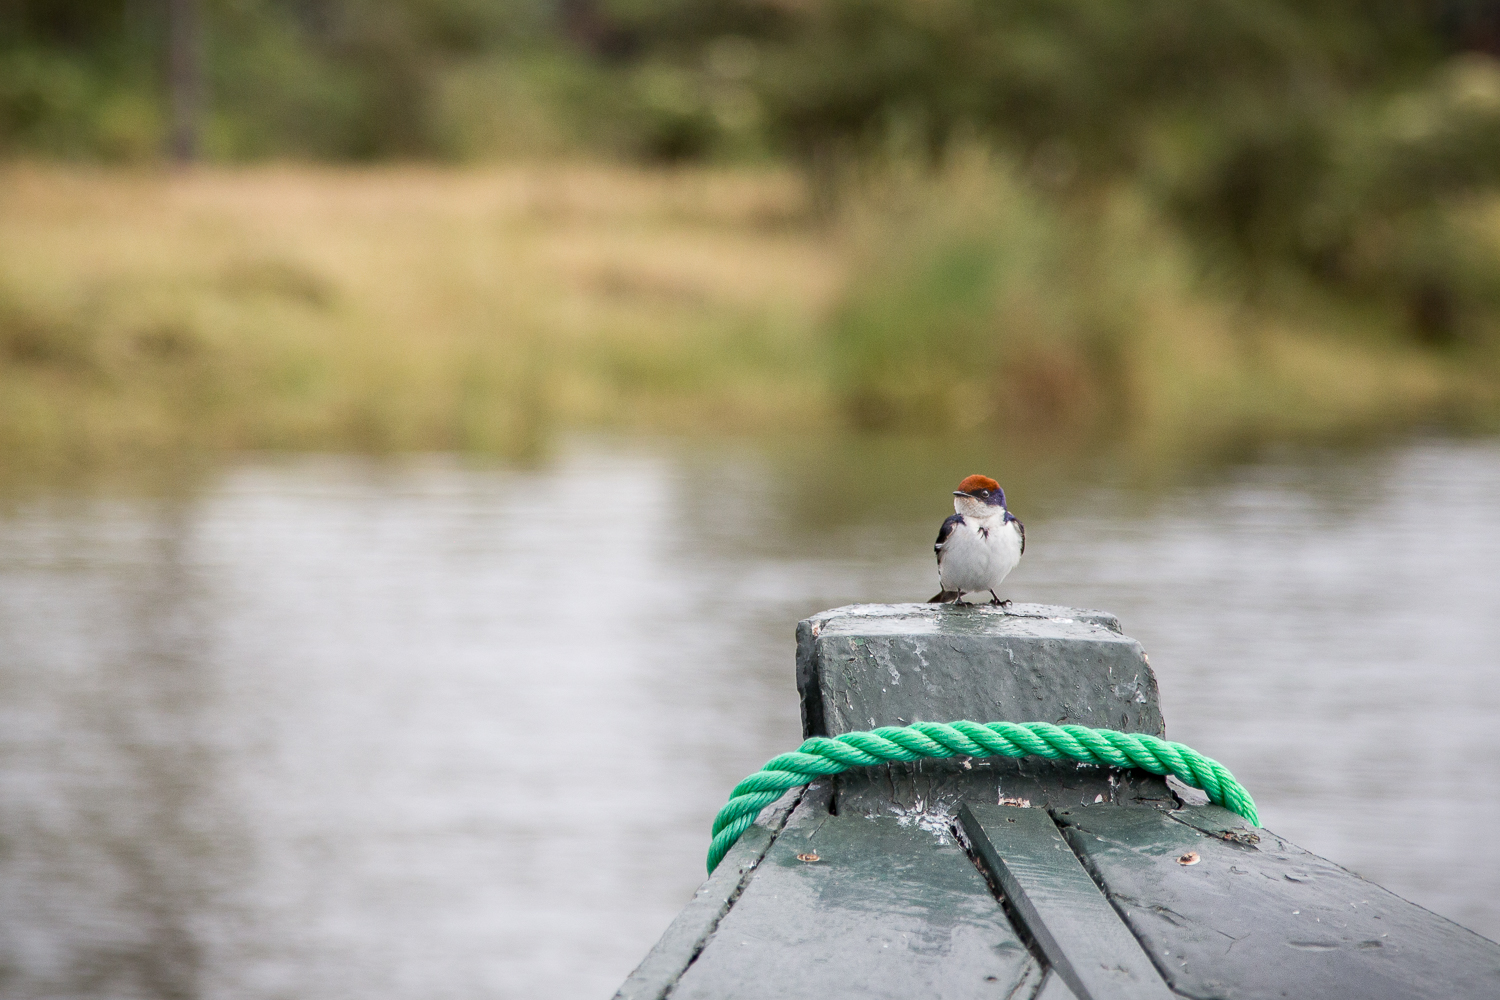 Not sure what kind of bird this is. Let's call it a Red Capped Boatrider